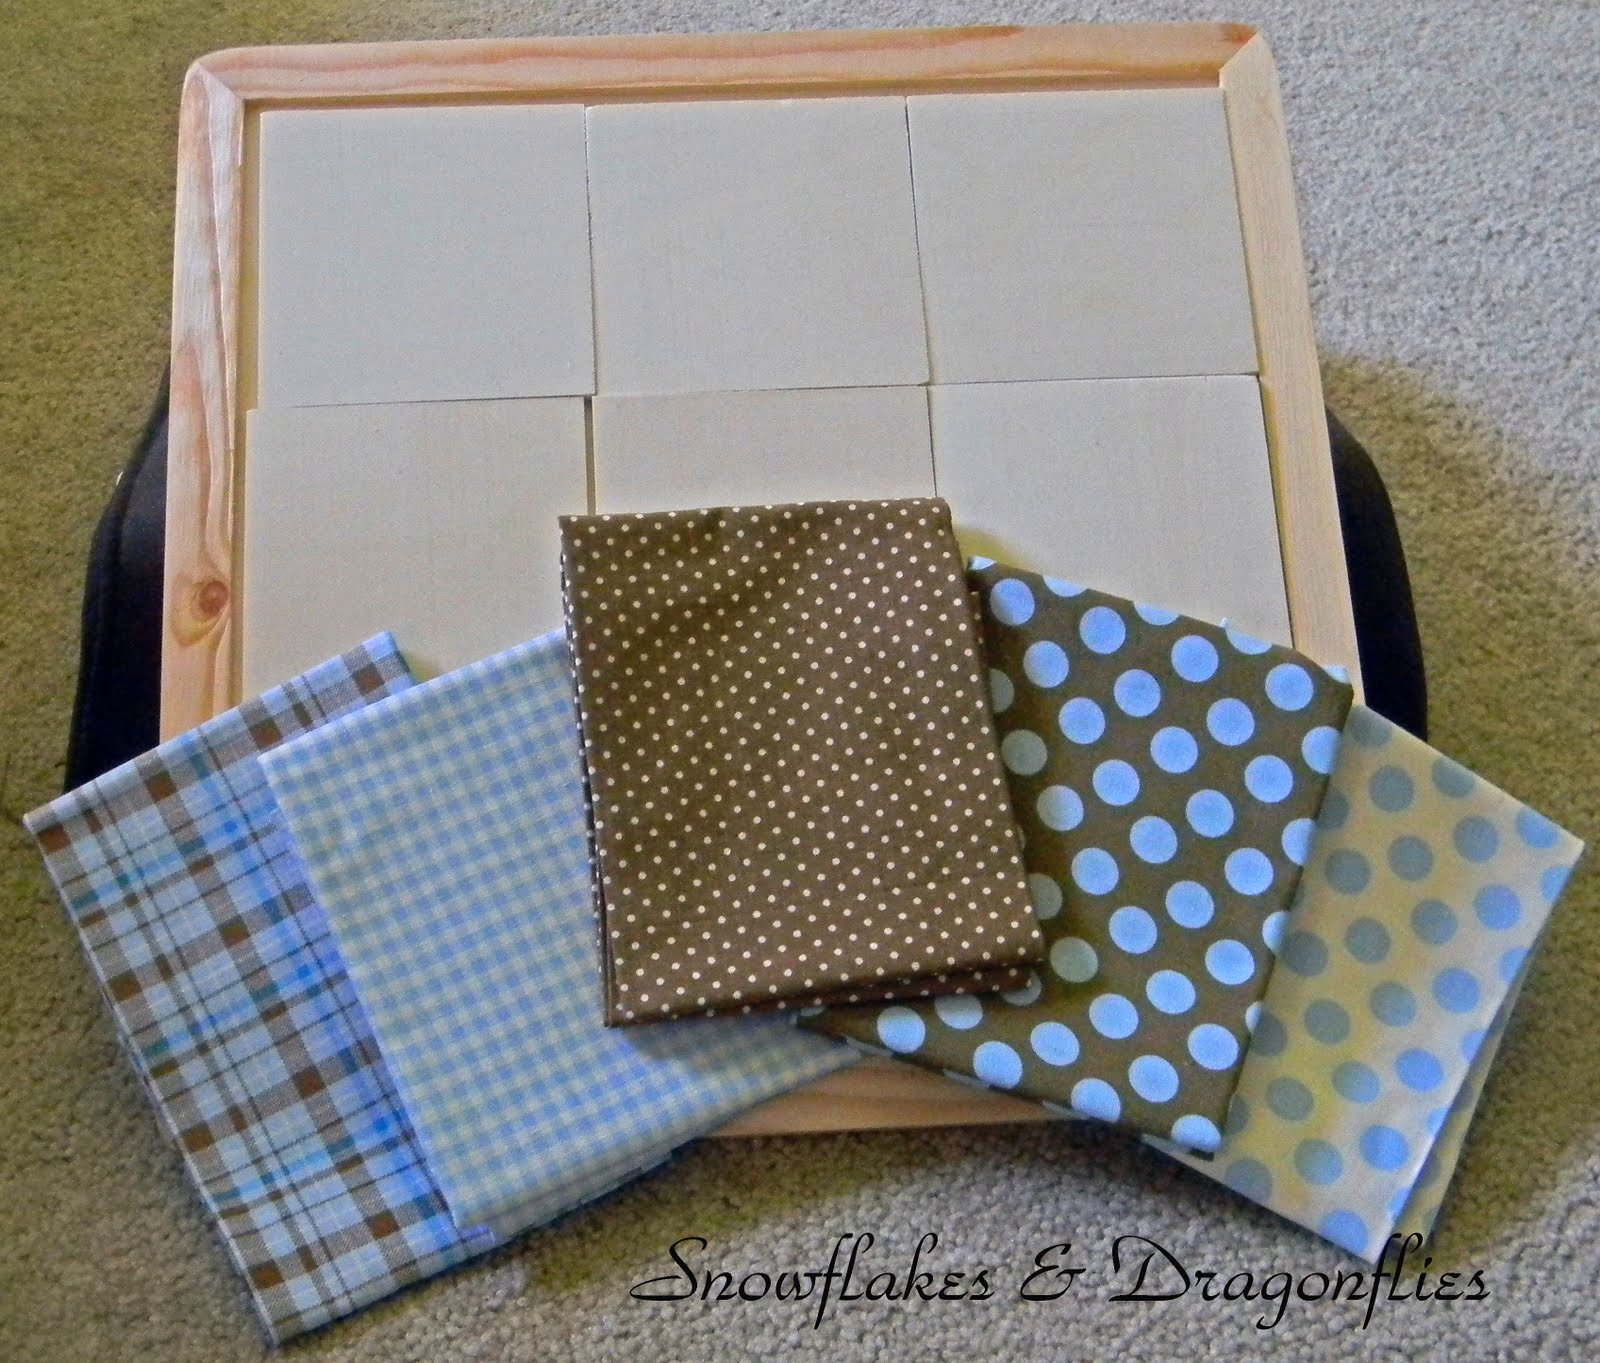 used Mod Podge to adhere the fabrics to the tiles and frame.